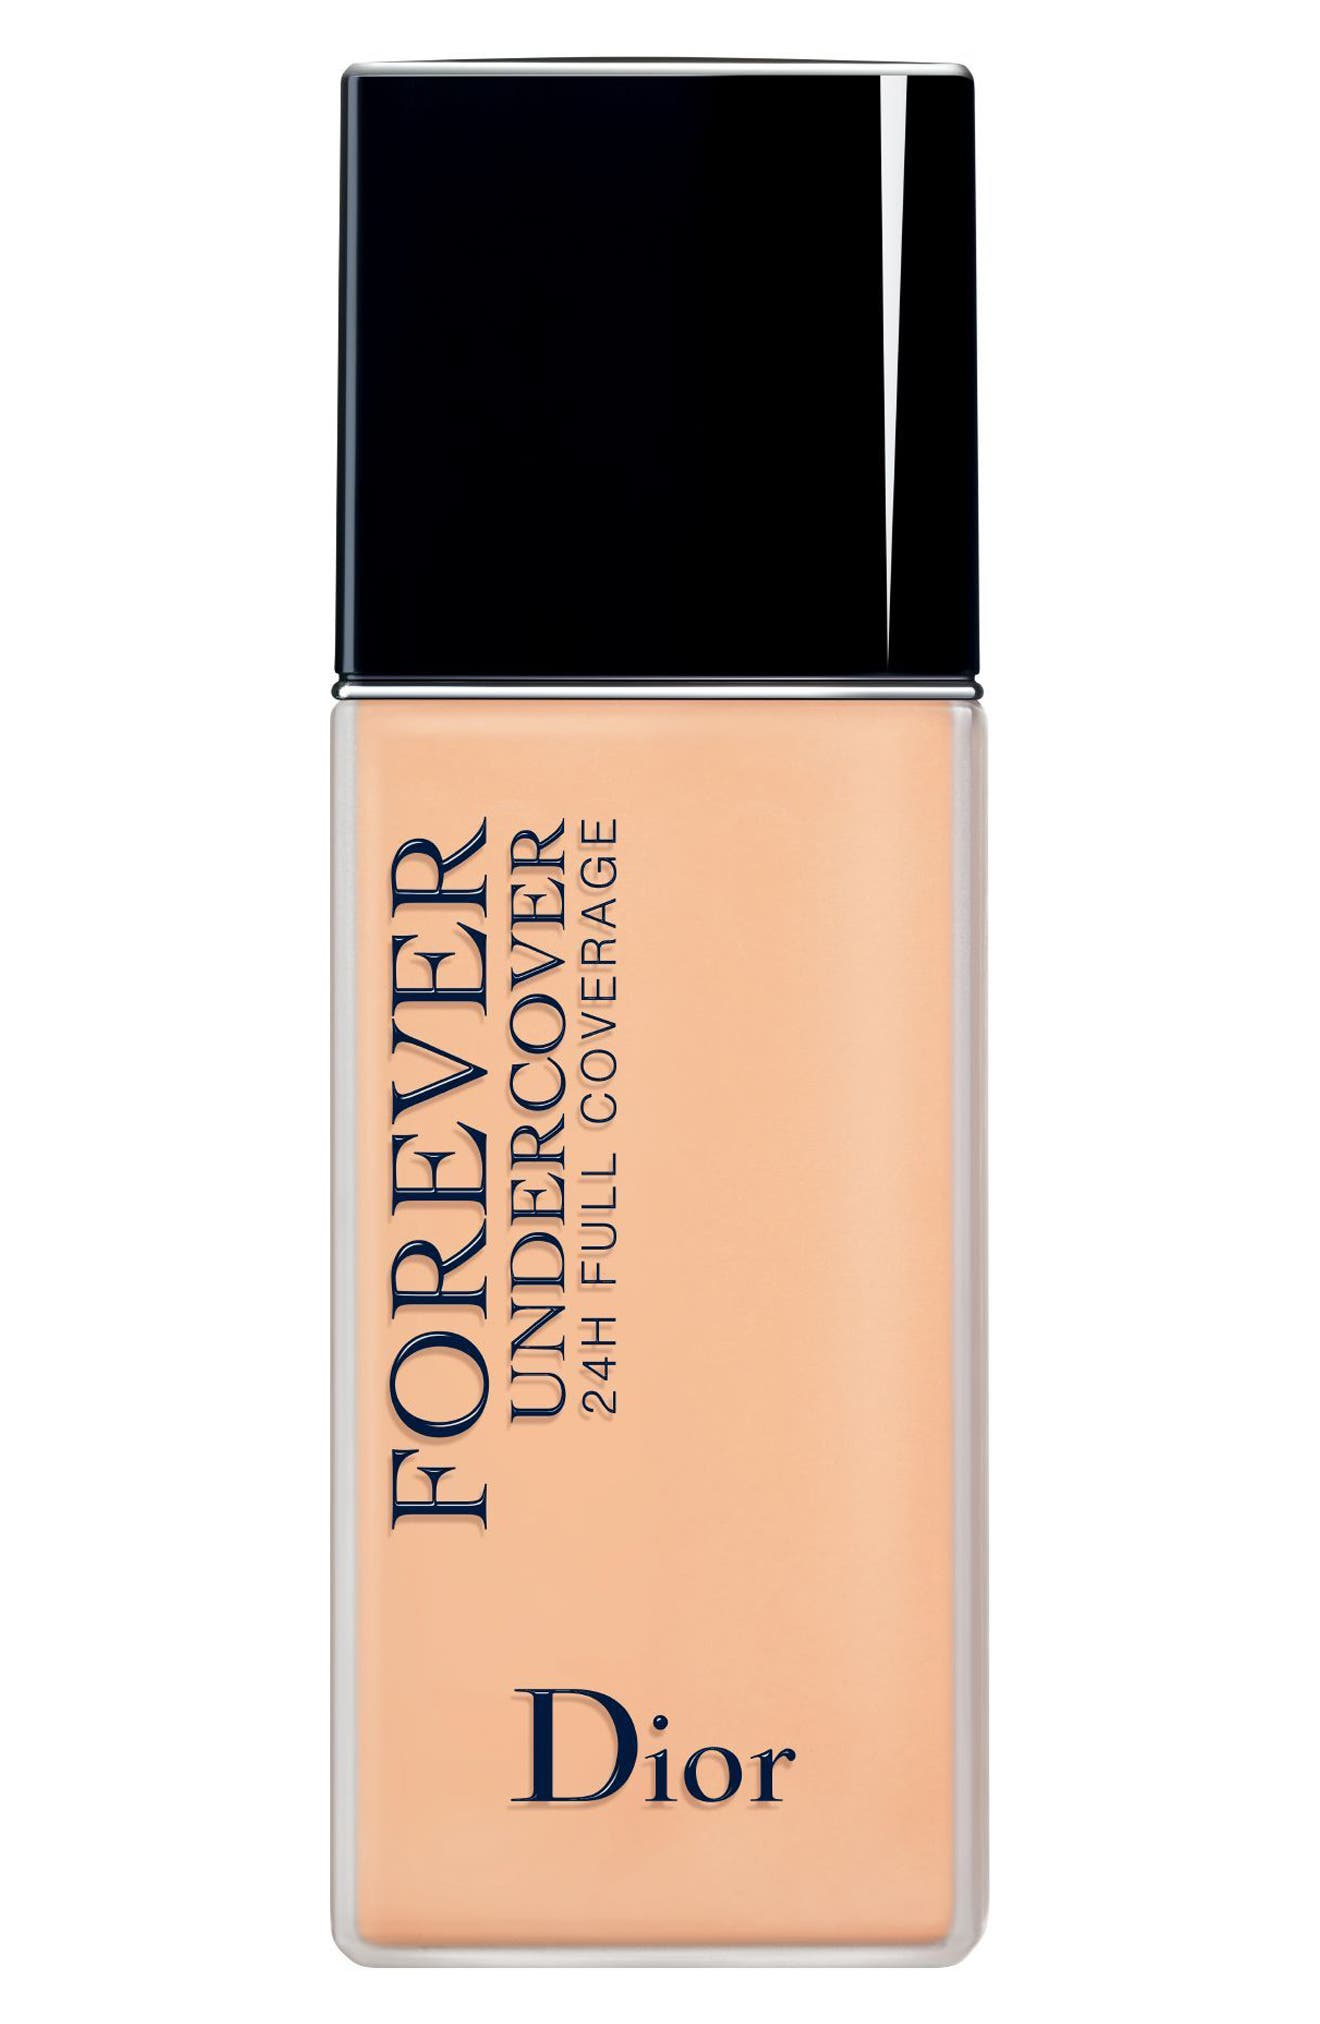 Dior Diorskin Forever Undercover 24-Hour Full Coverage Water-Based Foundation - 023 Peach